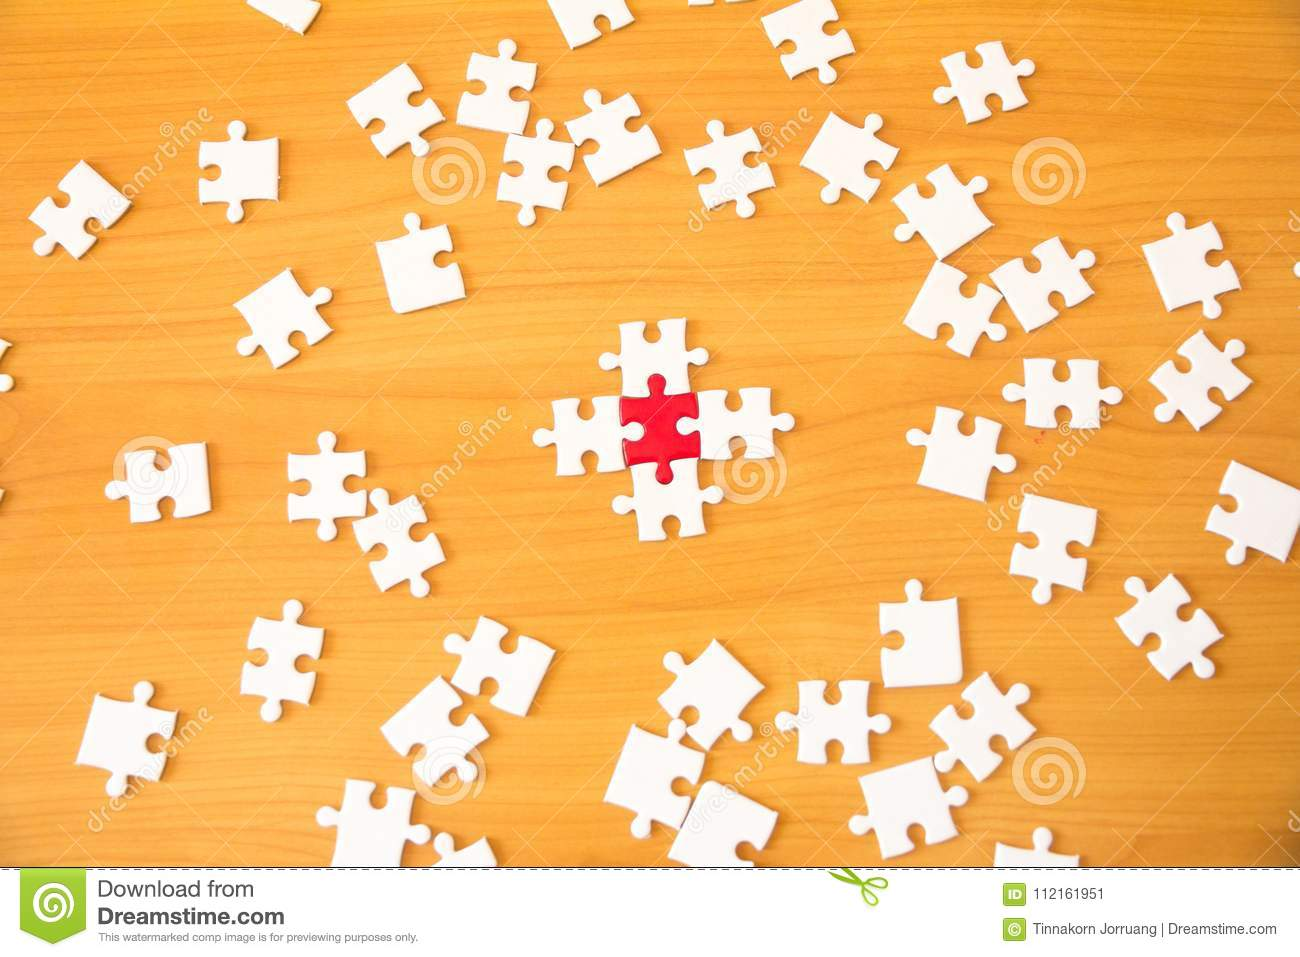 Teamwork concept using white and red puzzle pieces being fitted